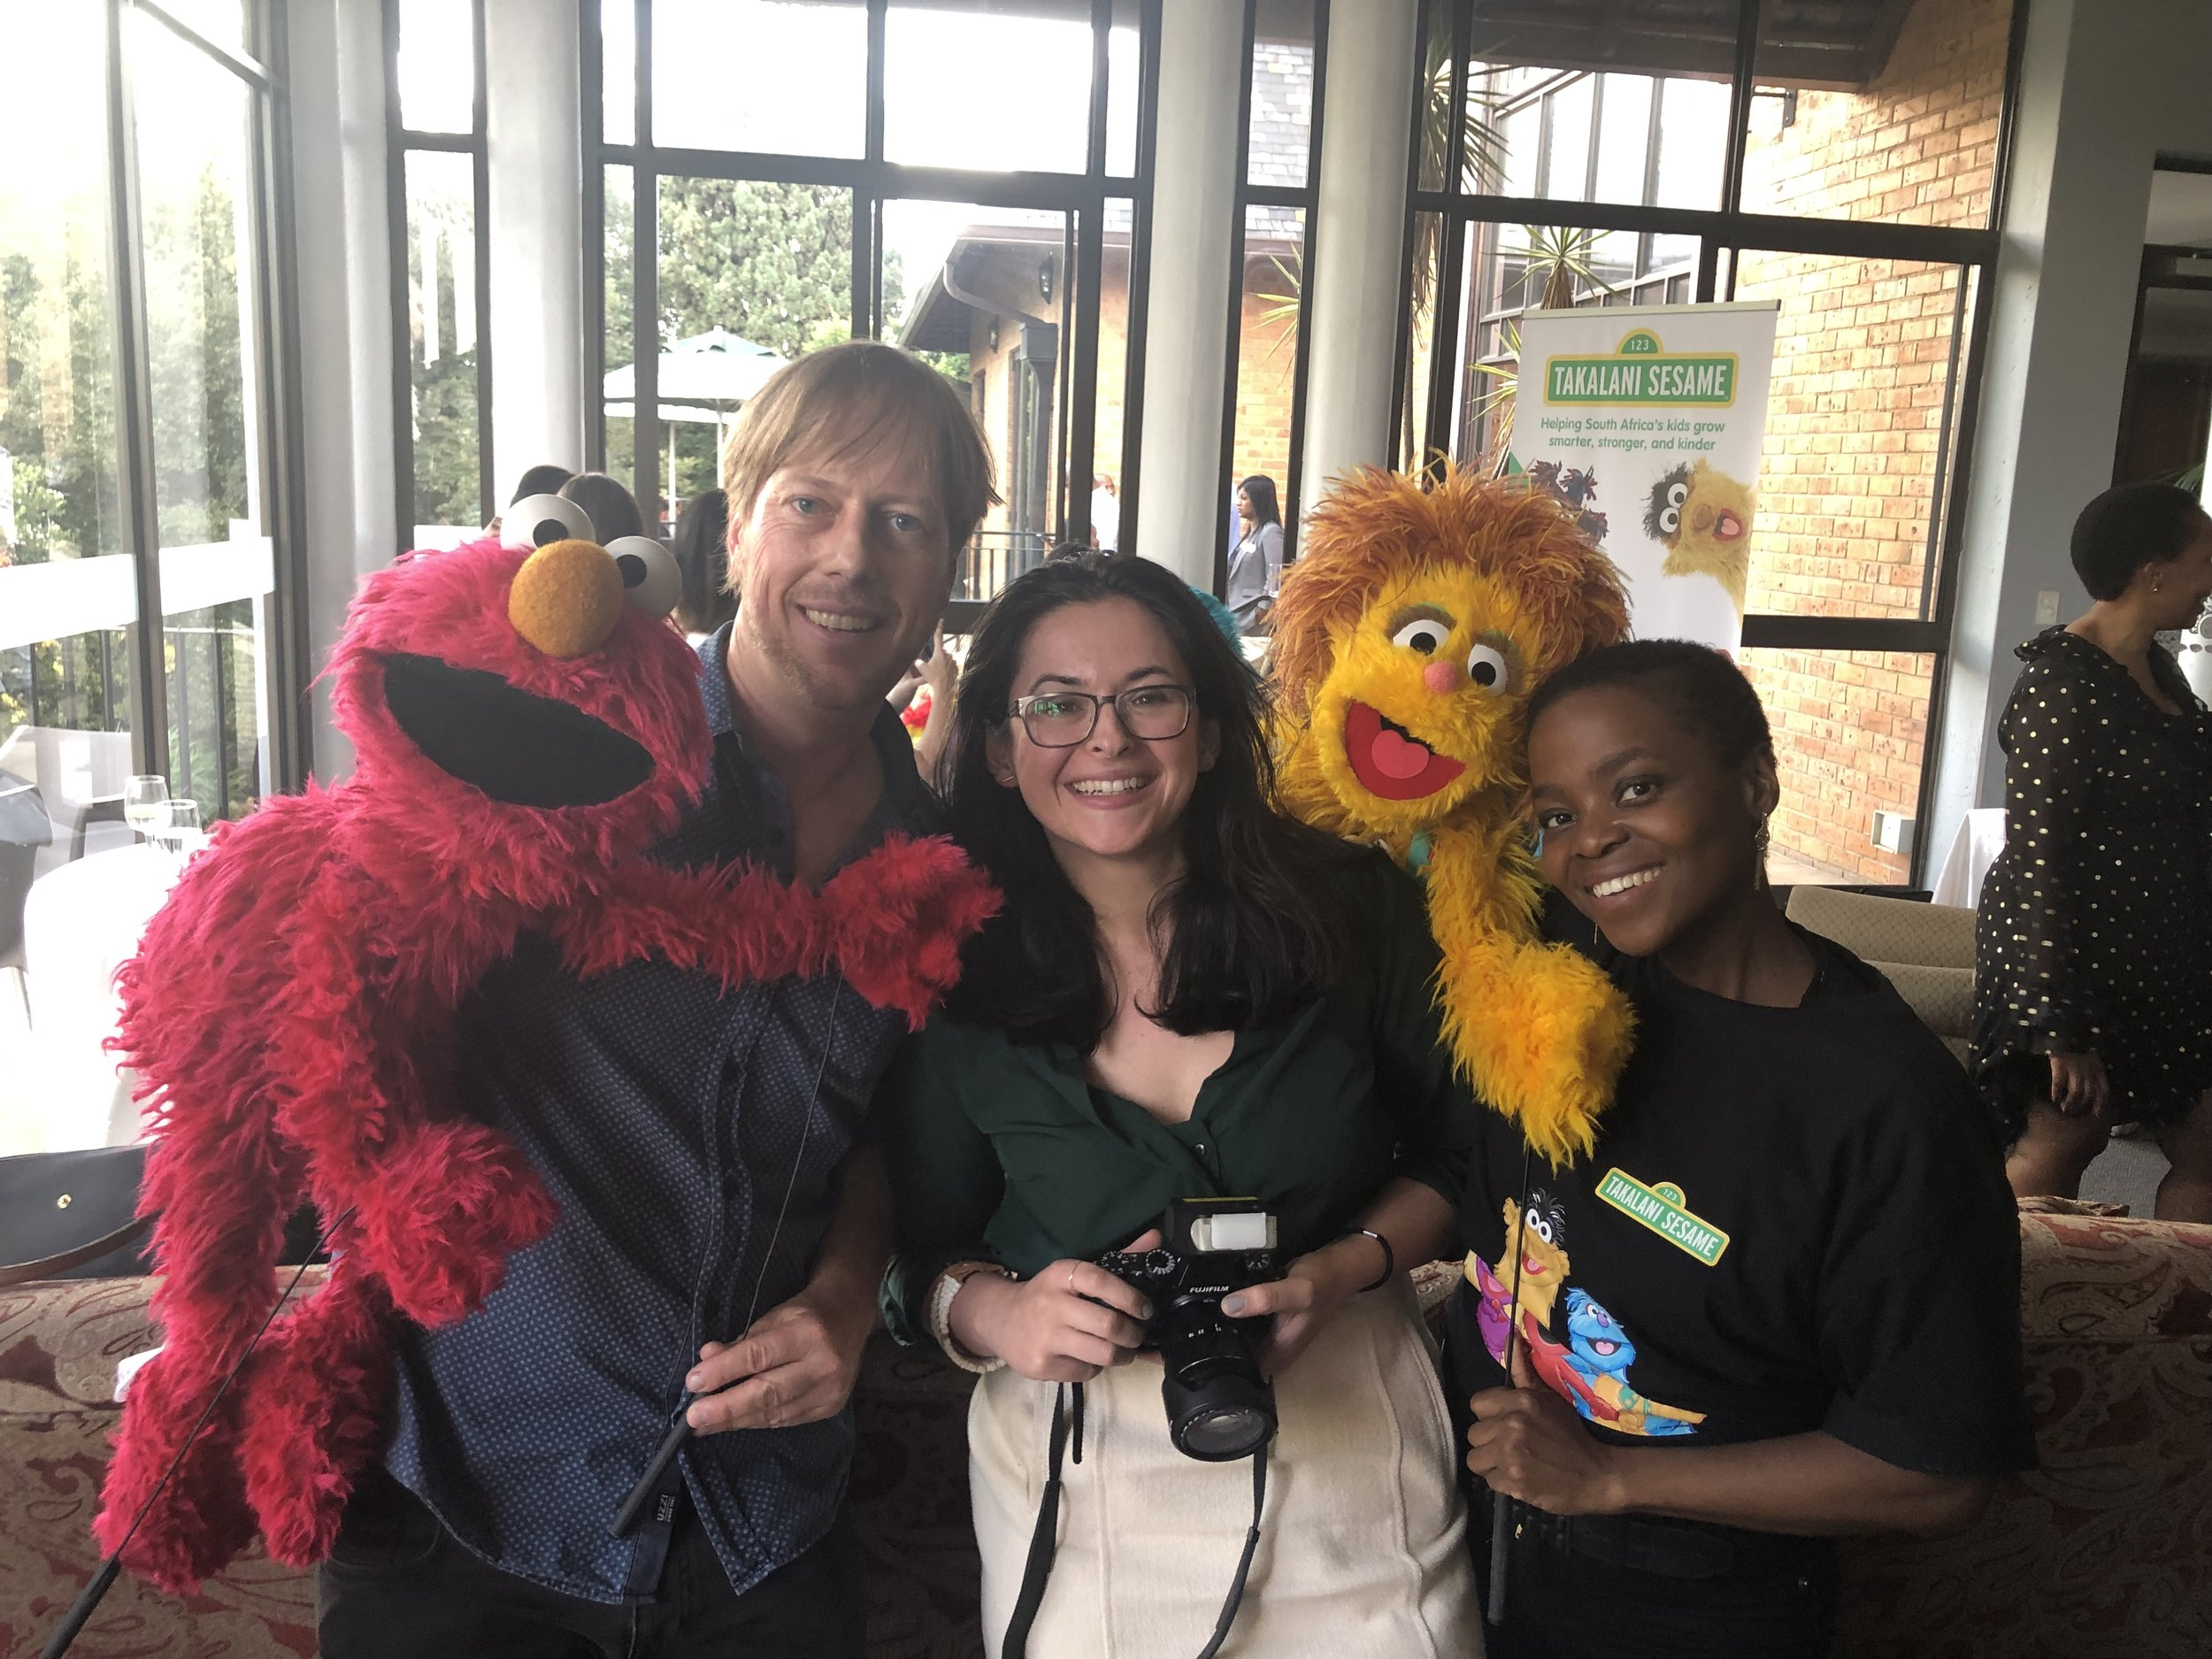 Bettina (in the middle with a camera) poses with two puppateers and their puppets from the Takalani Sesame production. The two puppets are Neno (Elmo for US audiences) and Kami (South Africa's HIV-positive muppet).